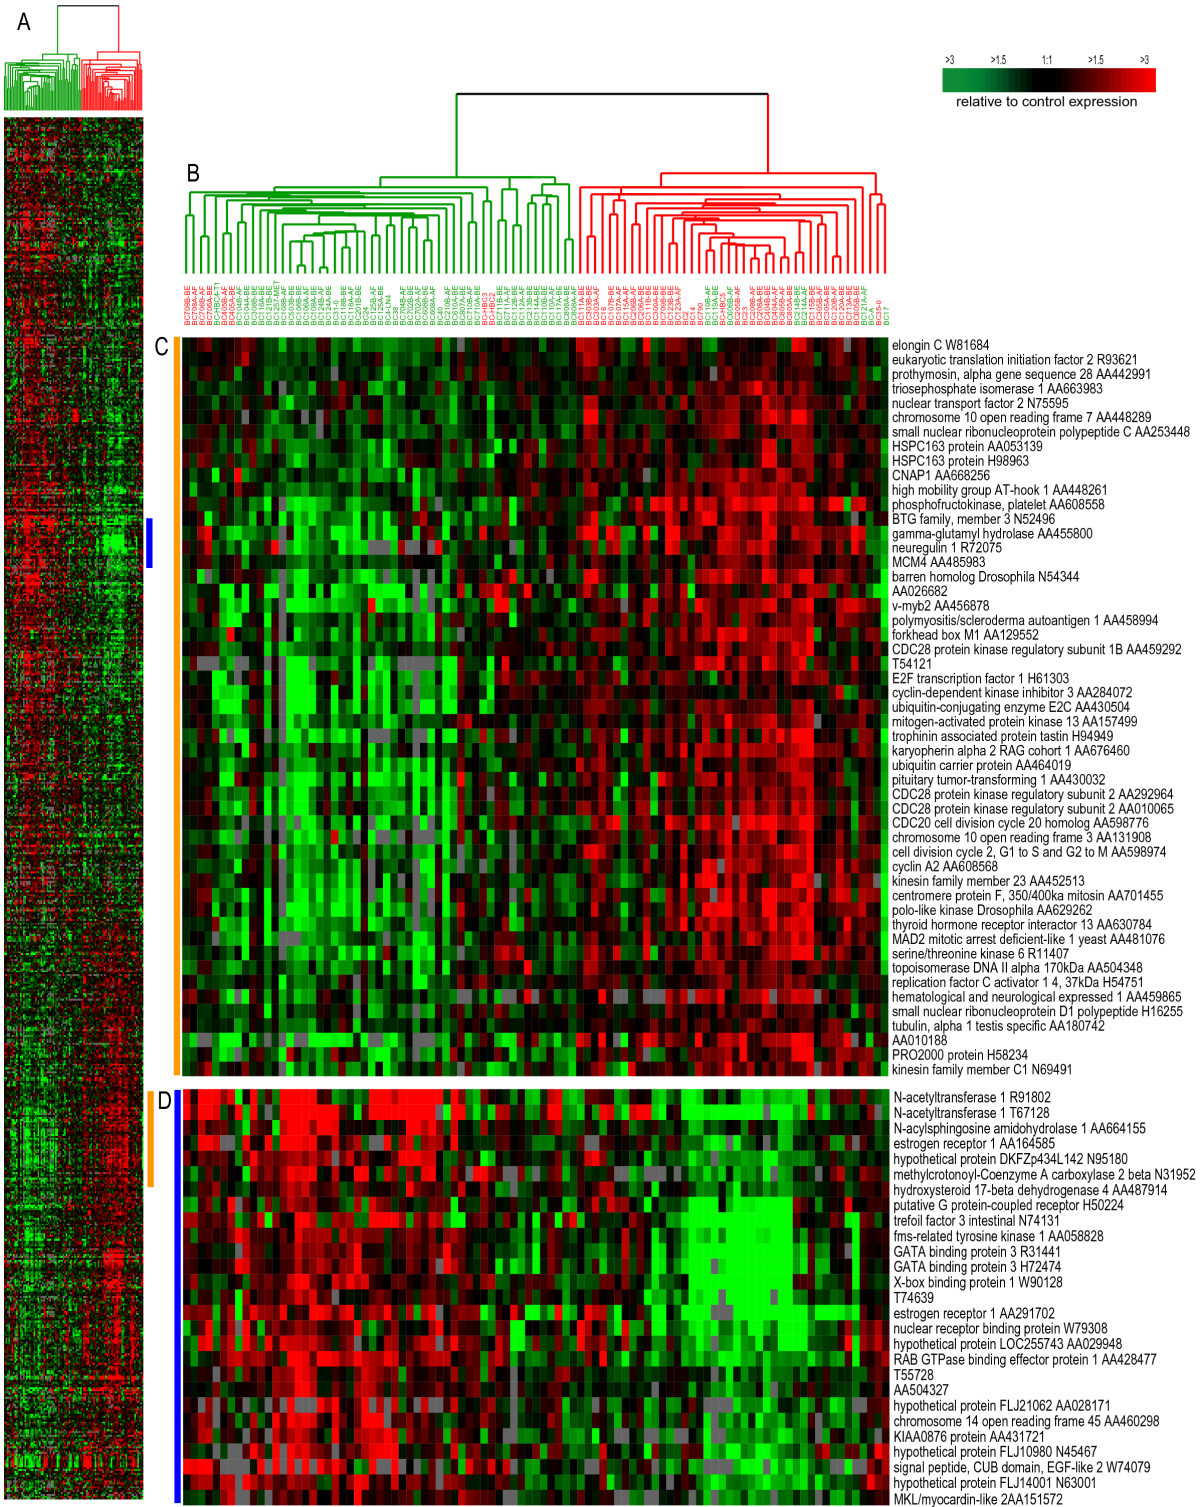 https://static-content.springer.com/image/art%3A10.1186%2F1471-2407-6-276/MediaObjects/12885_2006_Article_628_Fig4_HTML.jpg